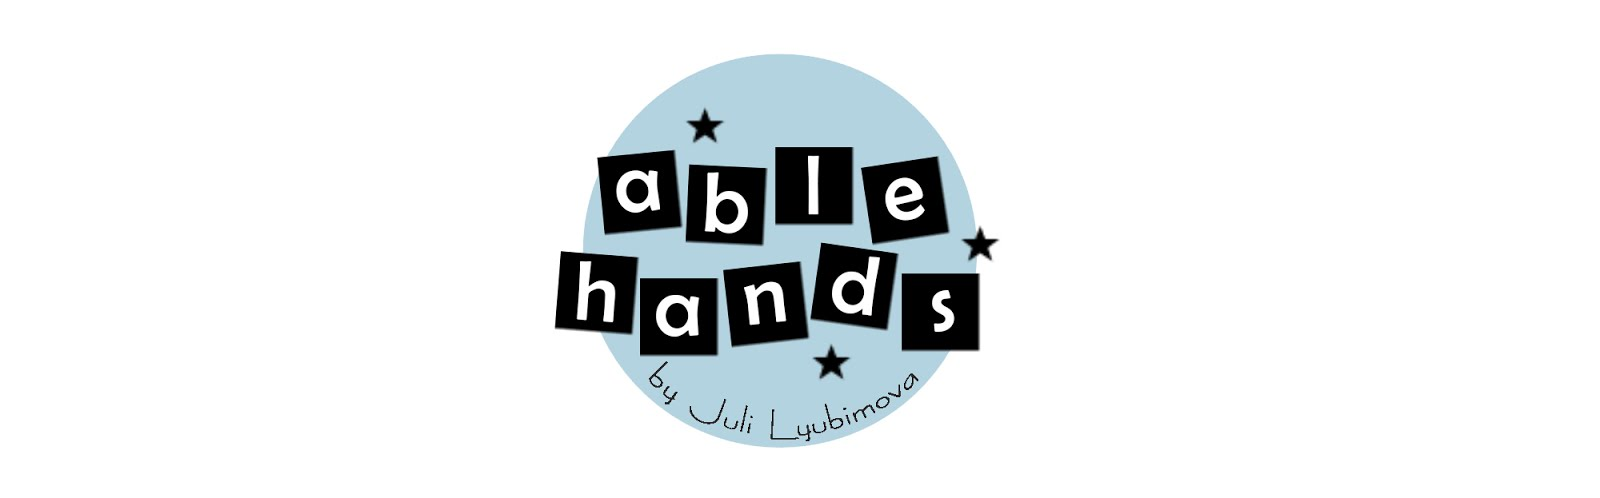 Able Hands